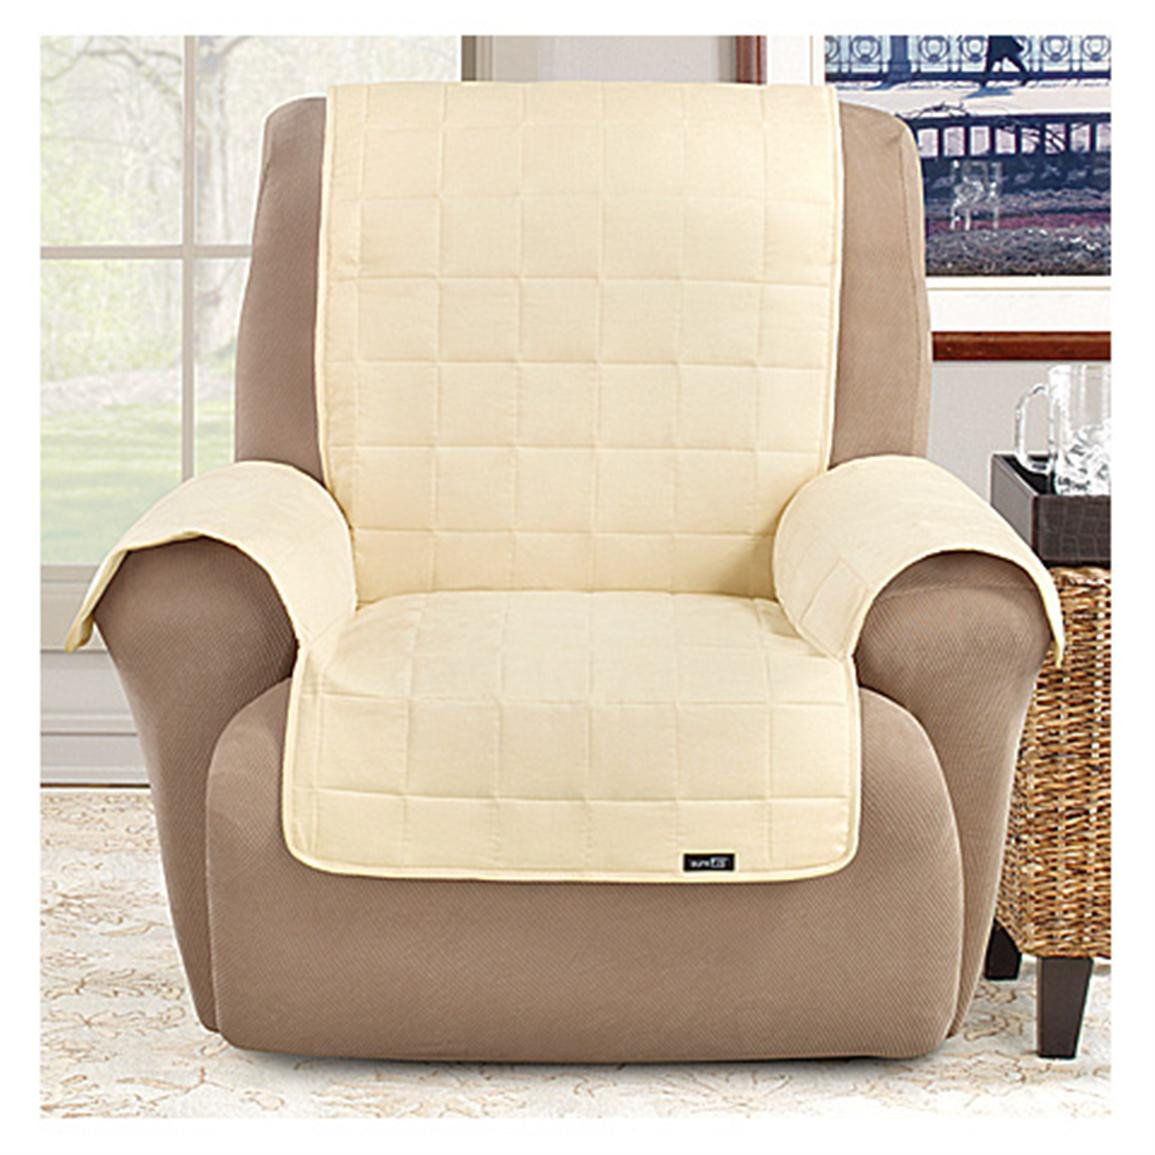 Best ideas about Sure Fit Chair Covers . Save or Pin Sure Fit Waterproof Pet Cover Furniture Covers Now.